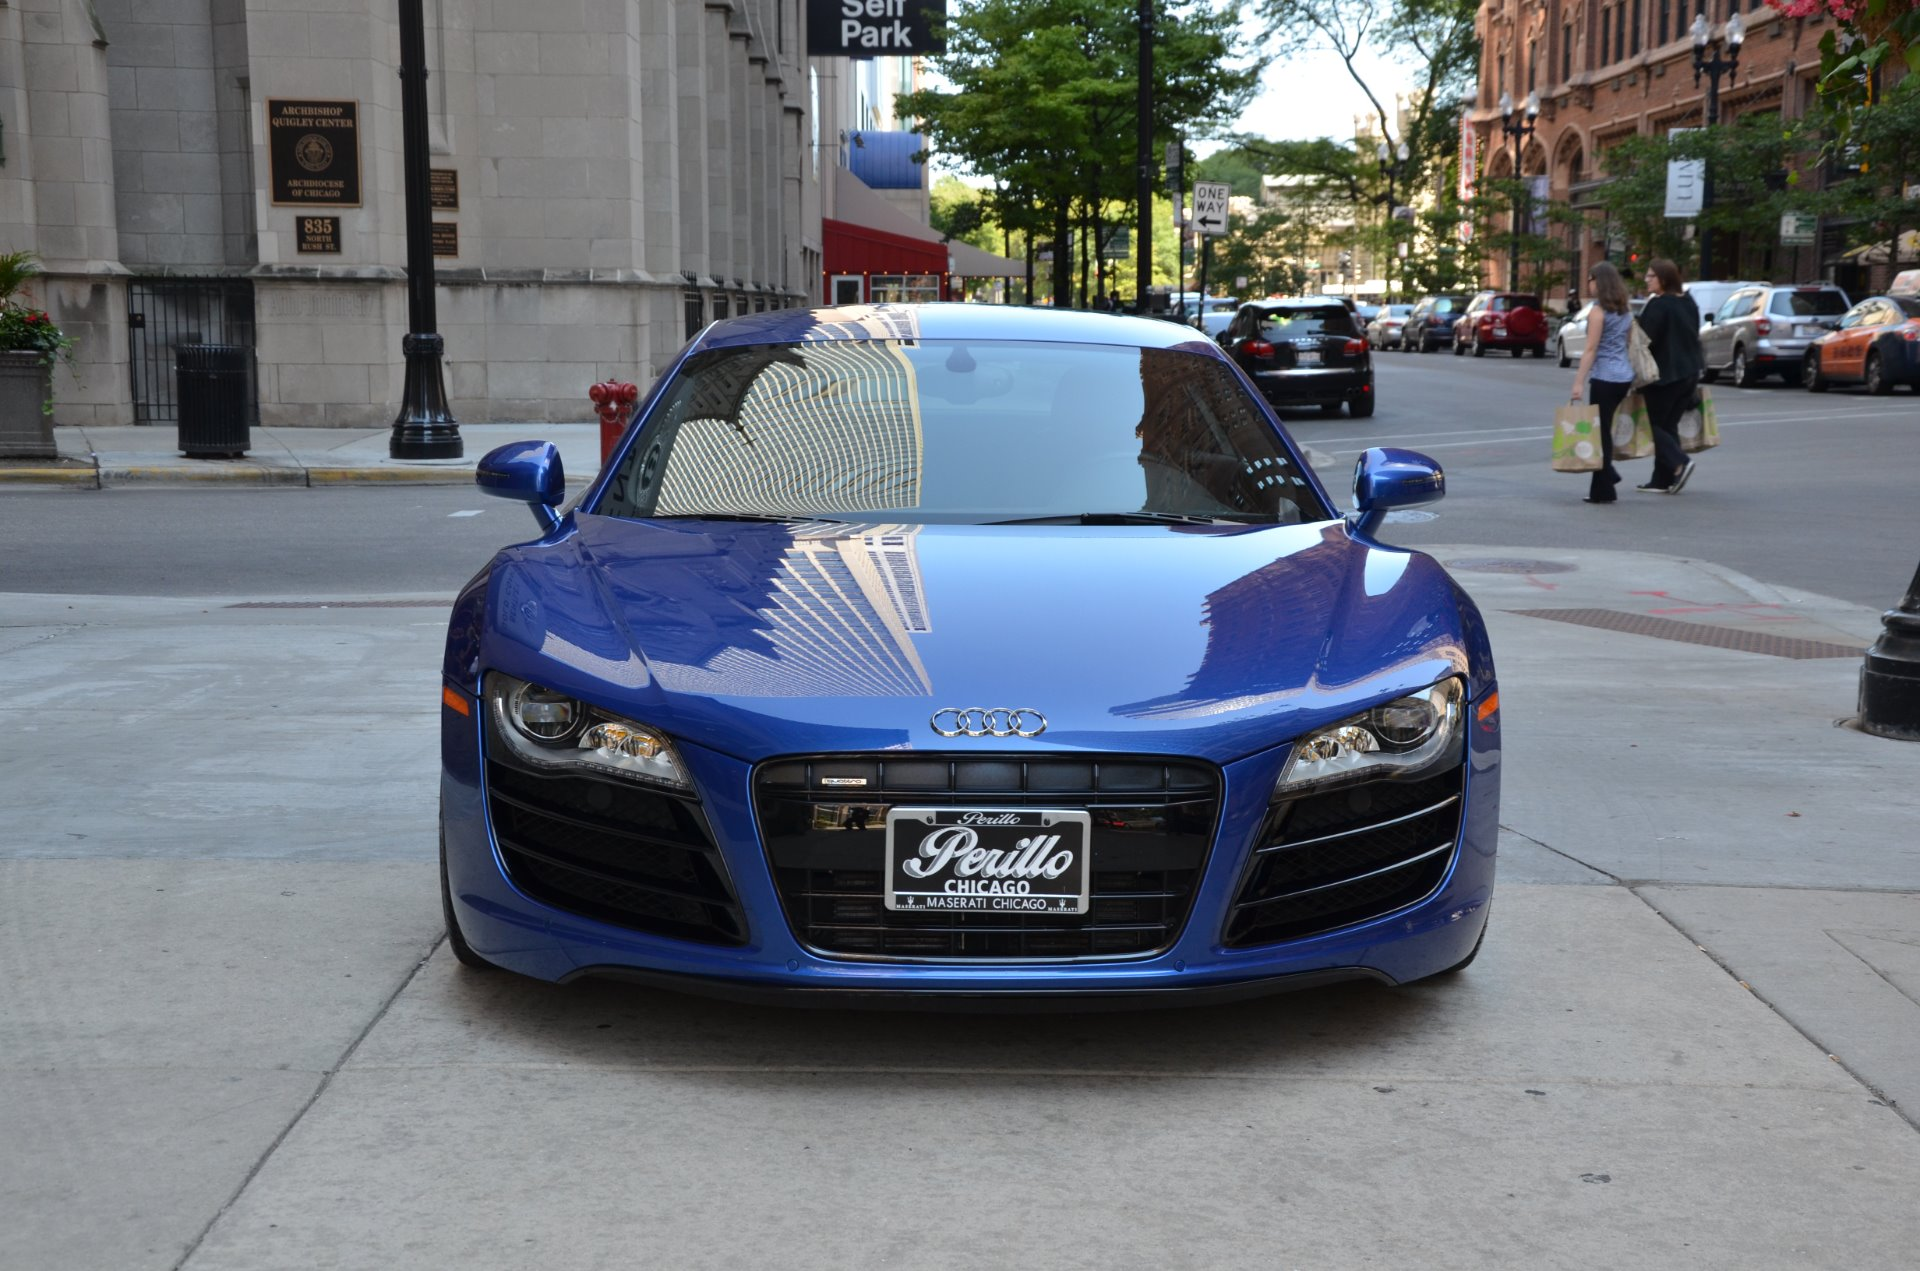 2012 audi r8 5 2 quattro stock gc mir94 for sale near. Black Bedroom Furniture Sets. Home Design Ideas